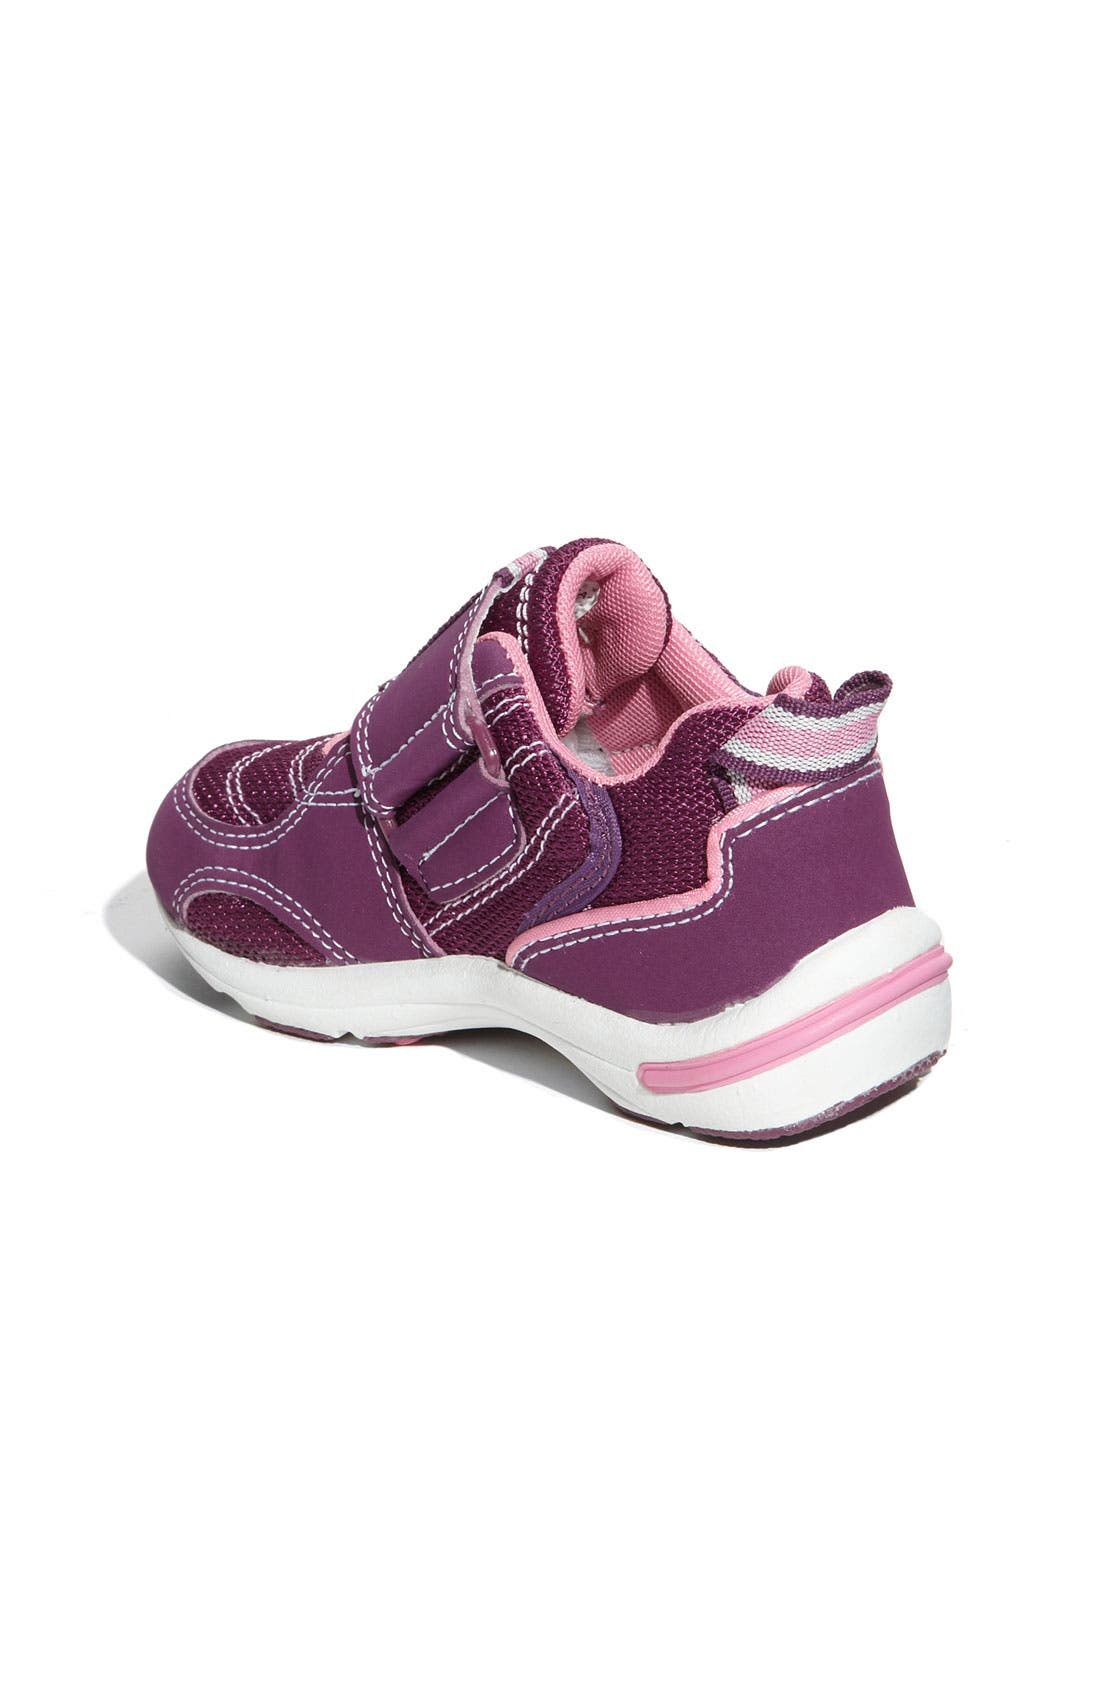 Alternate Image 2  - Tsukihoshi 'Child 1' Sneaker (Toddler & Little Kid)